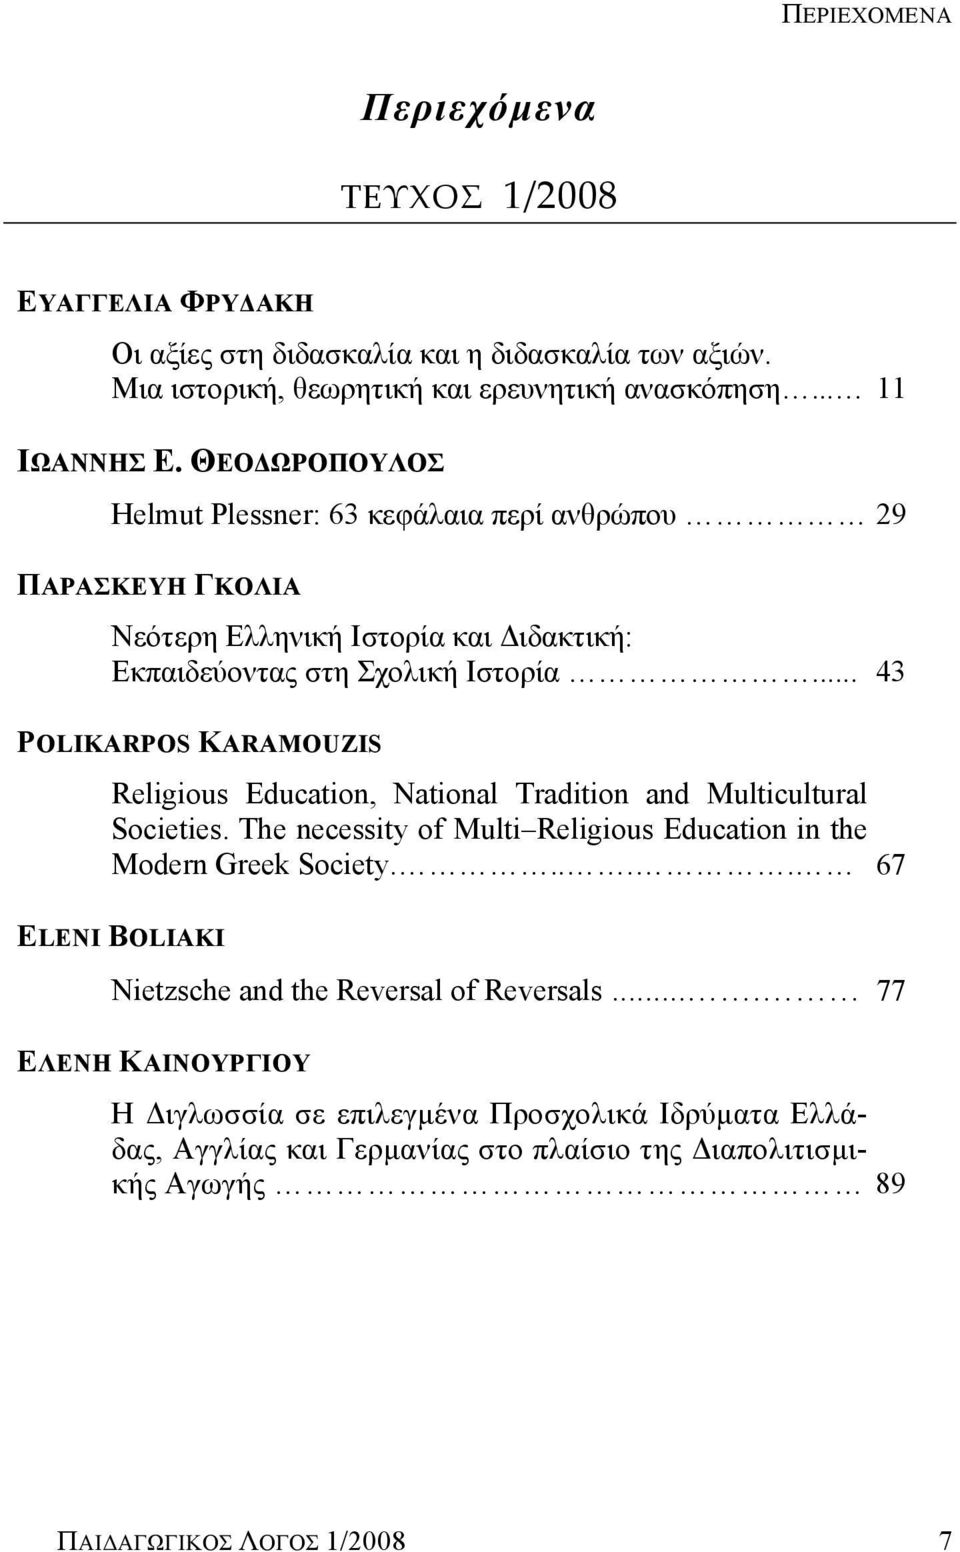 .. 43 POLIKARPOS KARAMOUZIS Religious Education, National Tradition and Multicultural Societies. The necessity of Multi Religious Education in the Modern Greek Society.